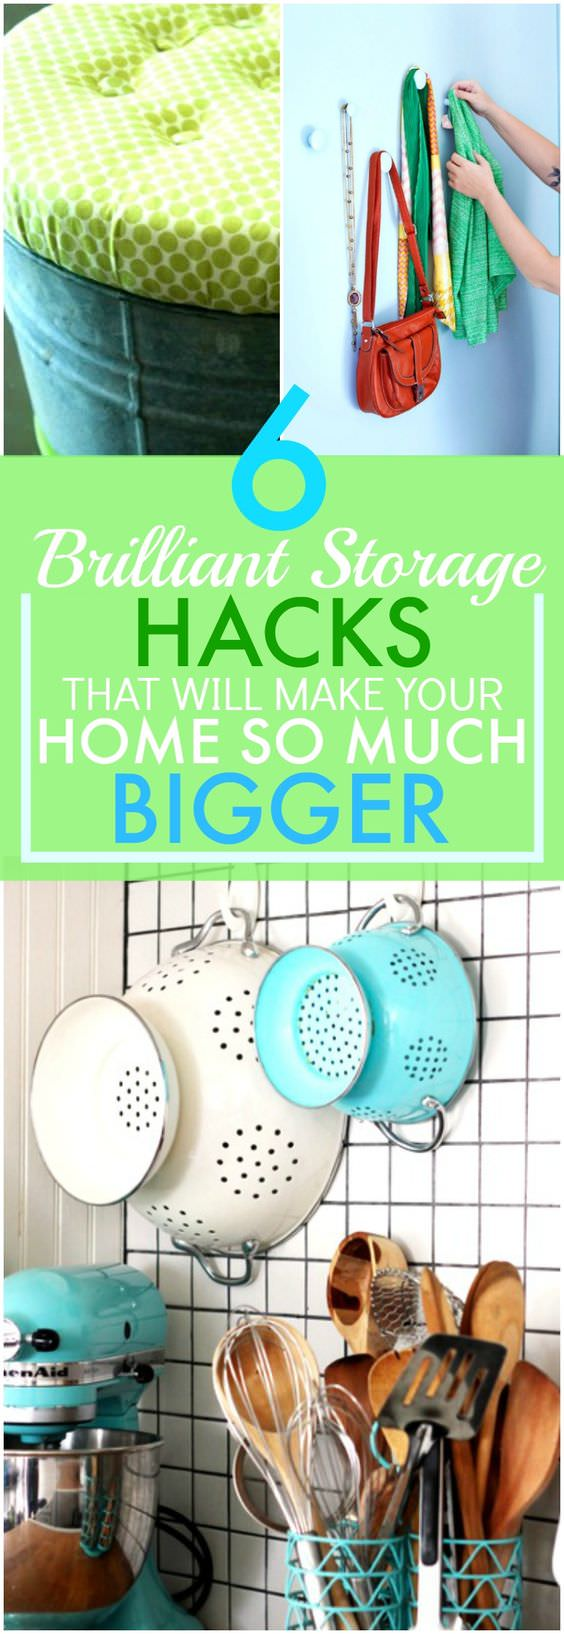 Apply a few of these brilliant storage ideas and you'll see how your small home will start to look bigger as it'll become organized and clutter-free.